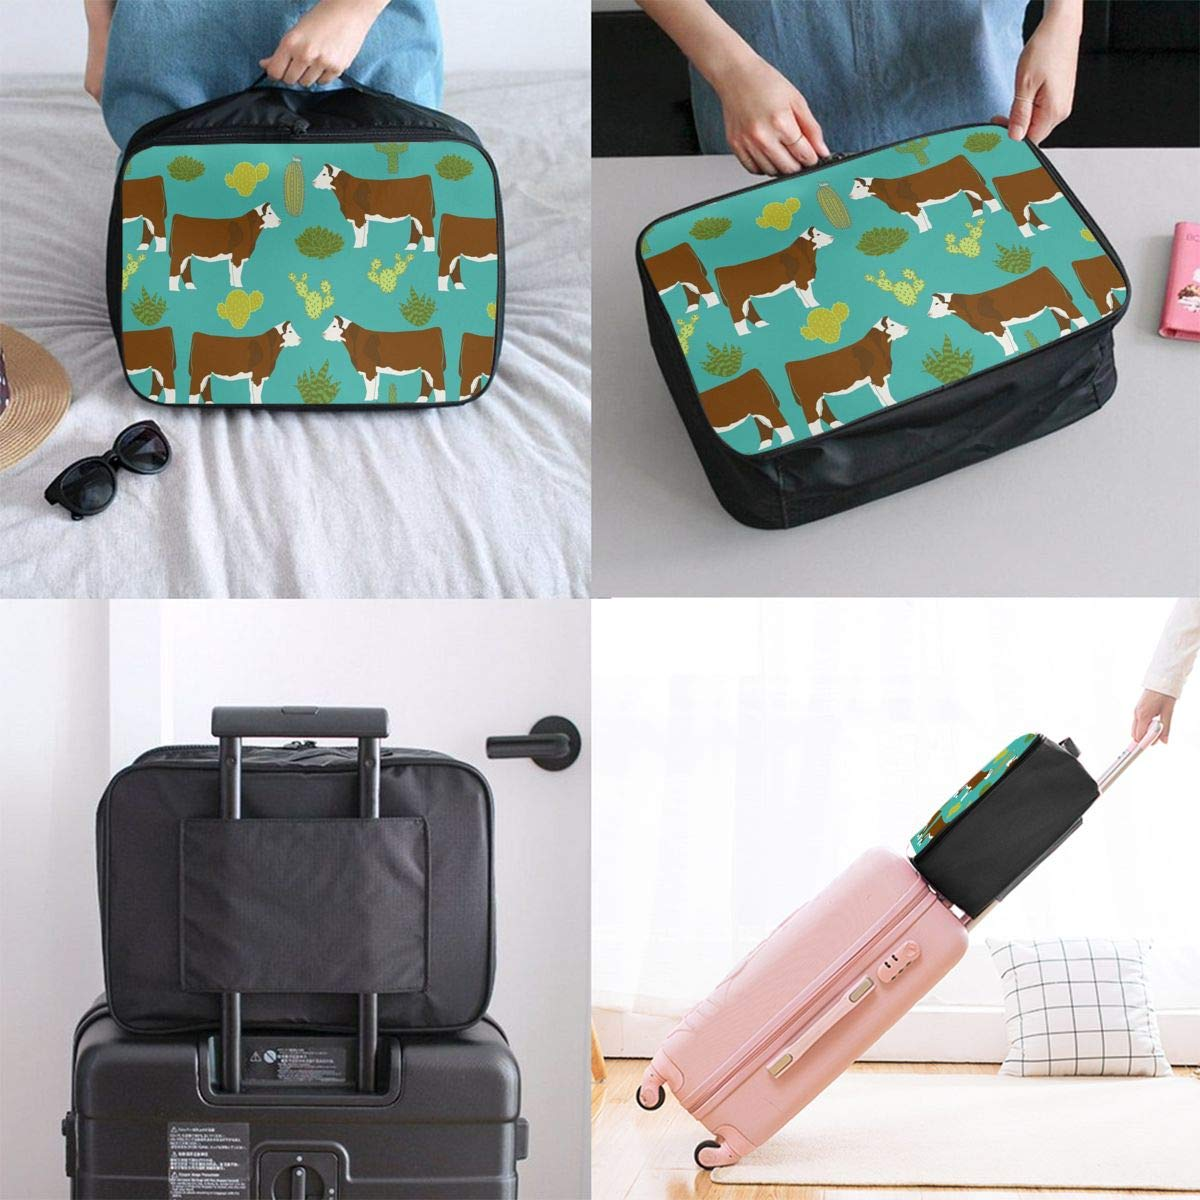 Hereford Cow Travel Fashion Lightweight Large Capacity Duffel Portable Waterproof Foldable Storage Carry Luggage Tote Bag